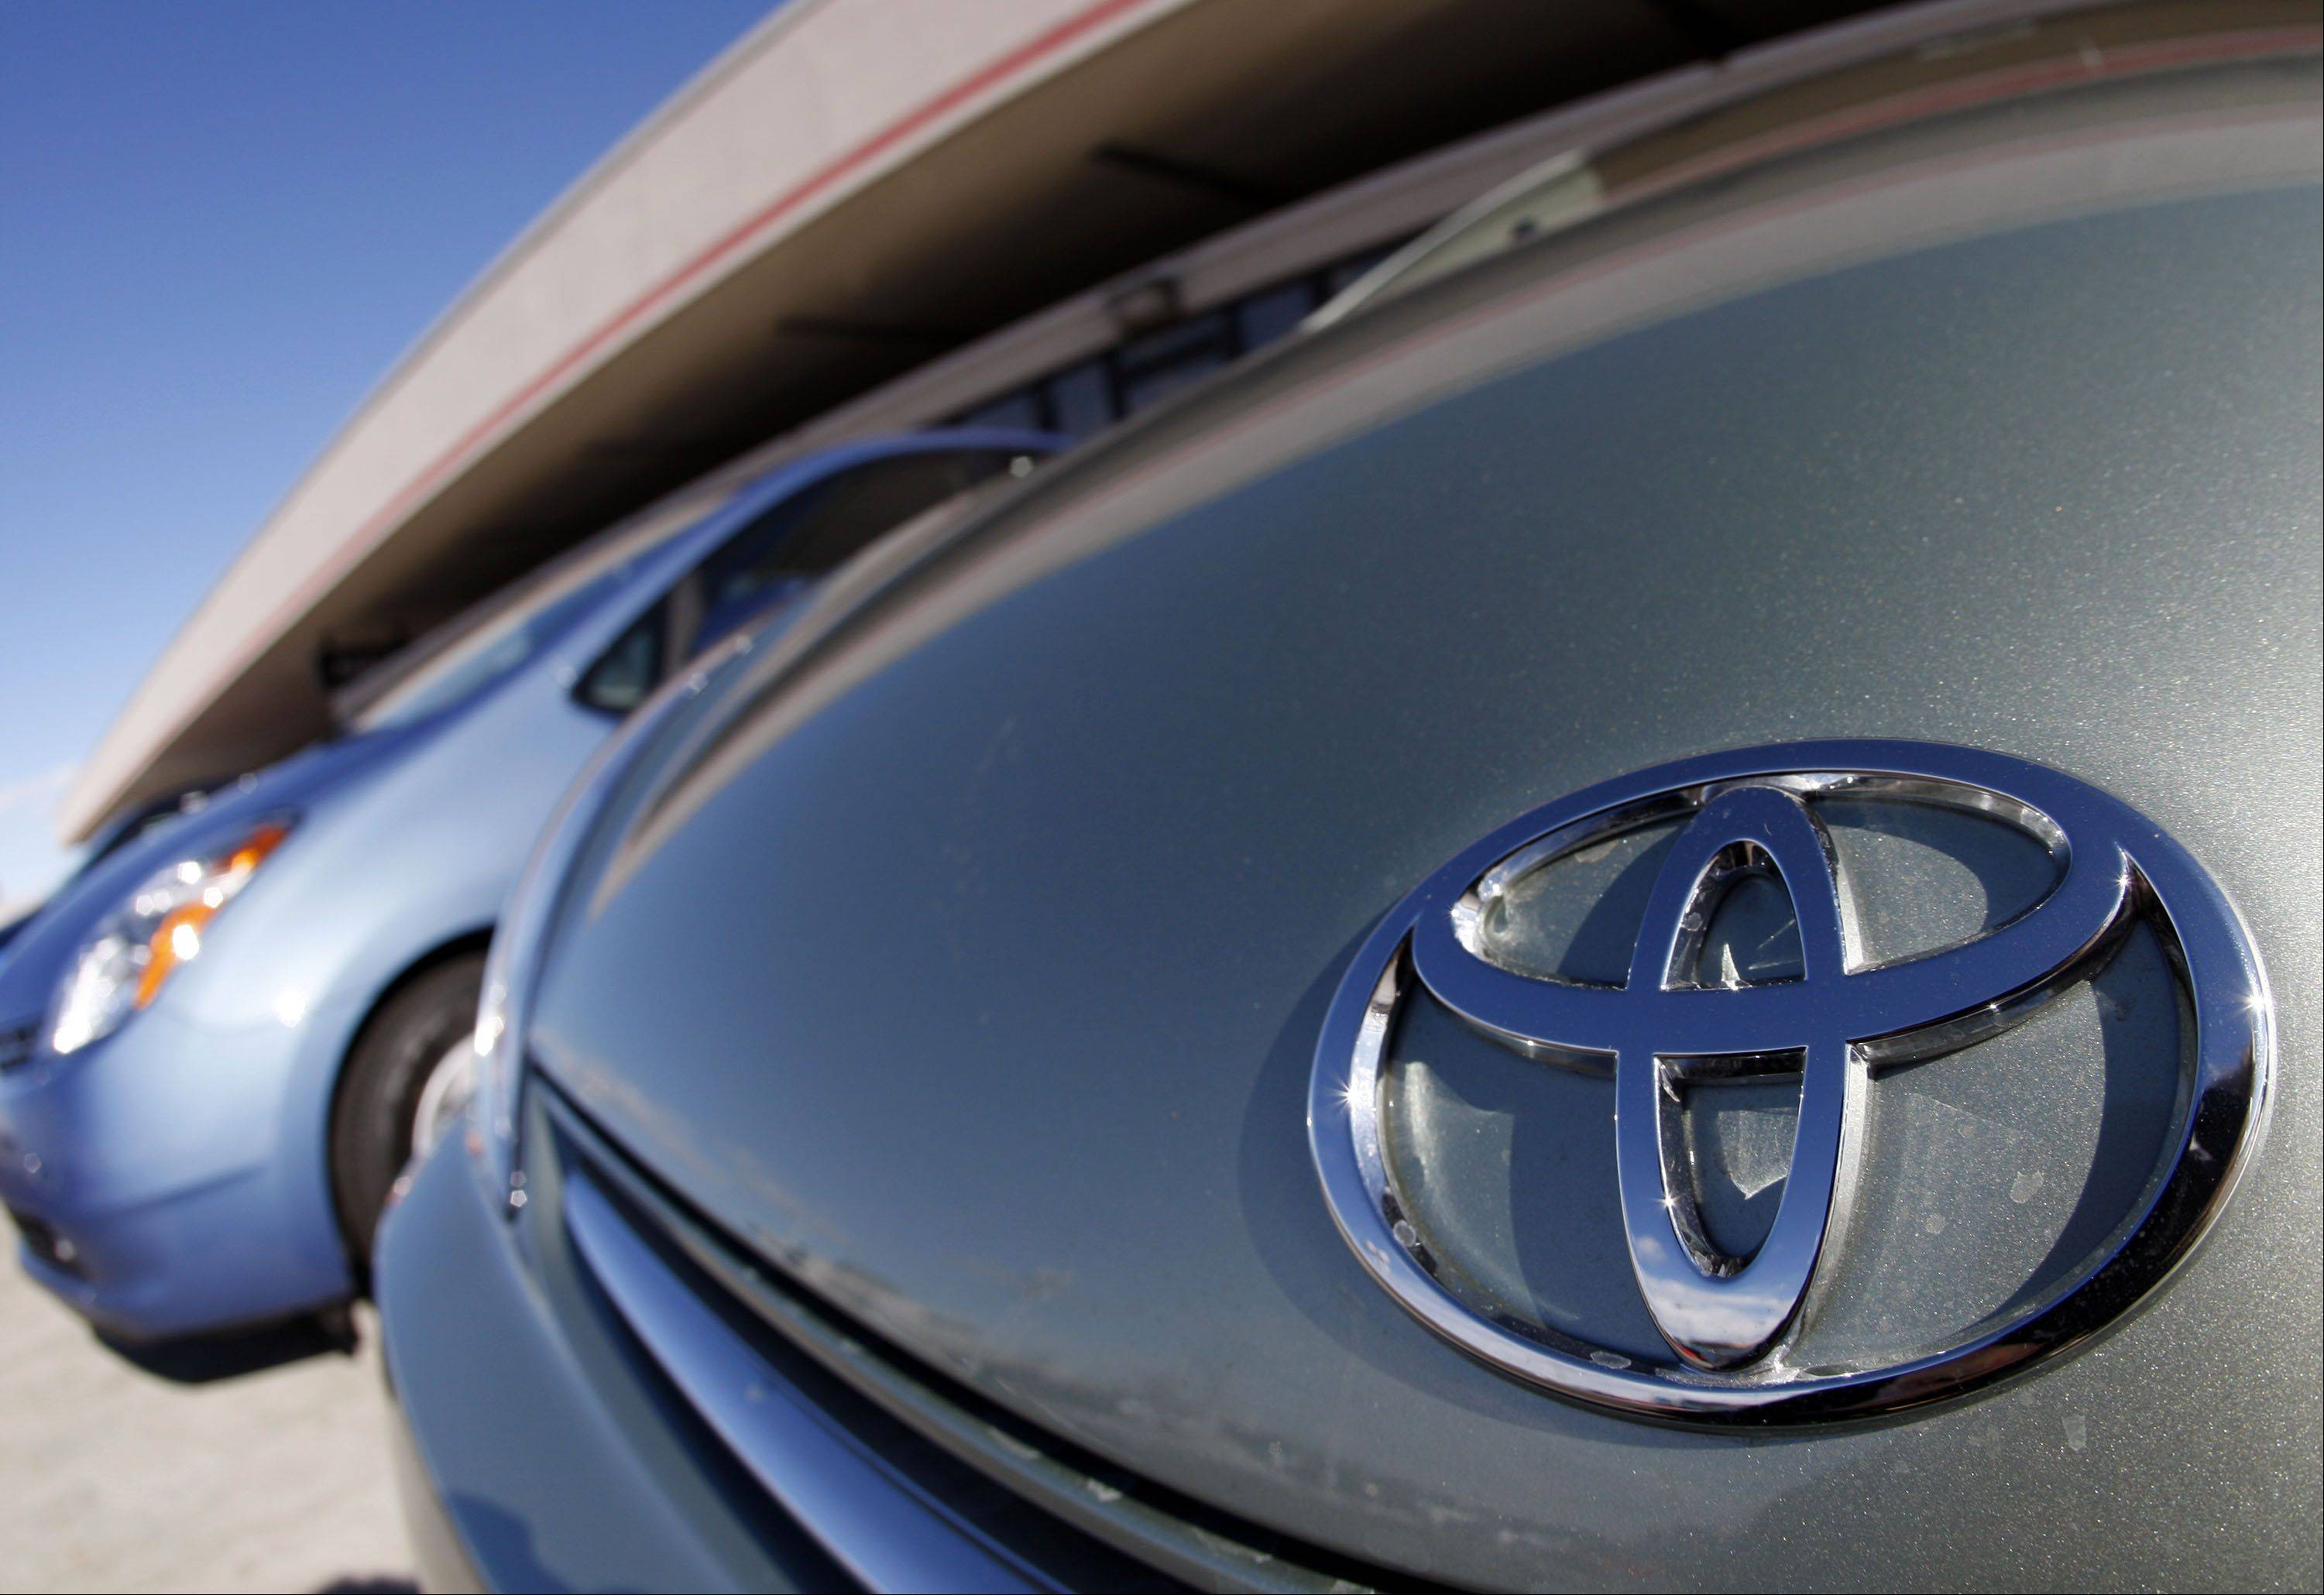 Toyota Motor Corp. said Wednesday it is recalling about 242,000 of its Prius and Lexus hybrid vehicles due to problems with their braking systems.